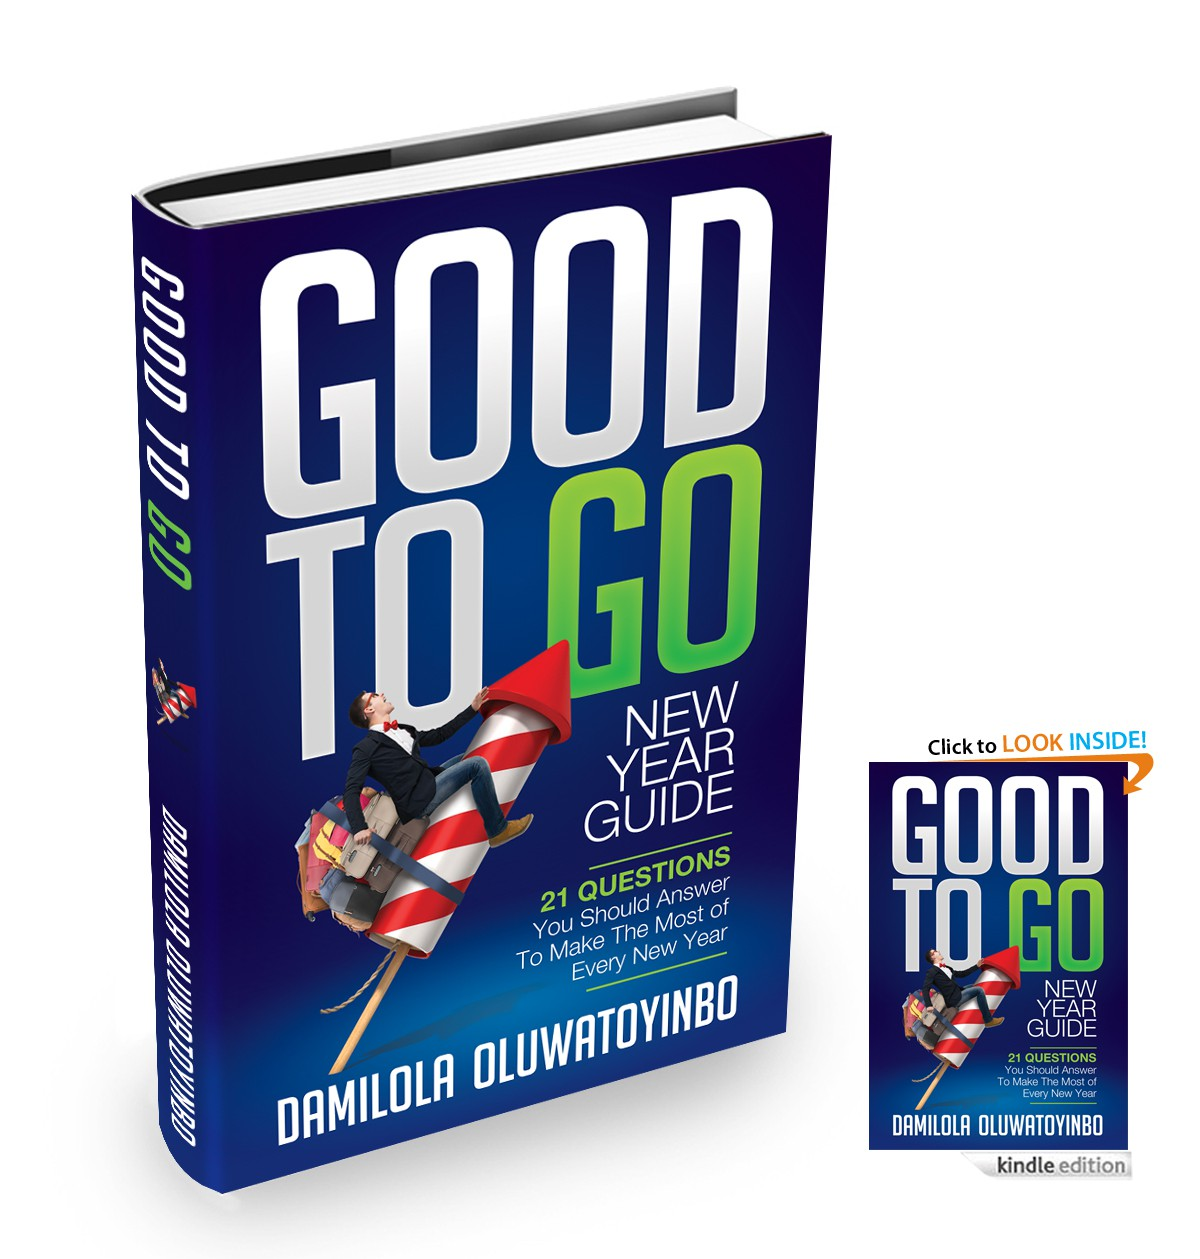 Create a fresh, bold, creative and captivating cover for my book, GOOD TO GO New Year Guide